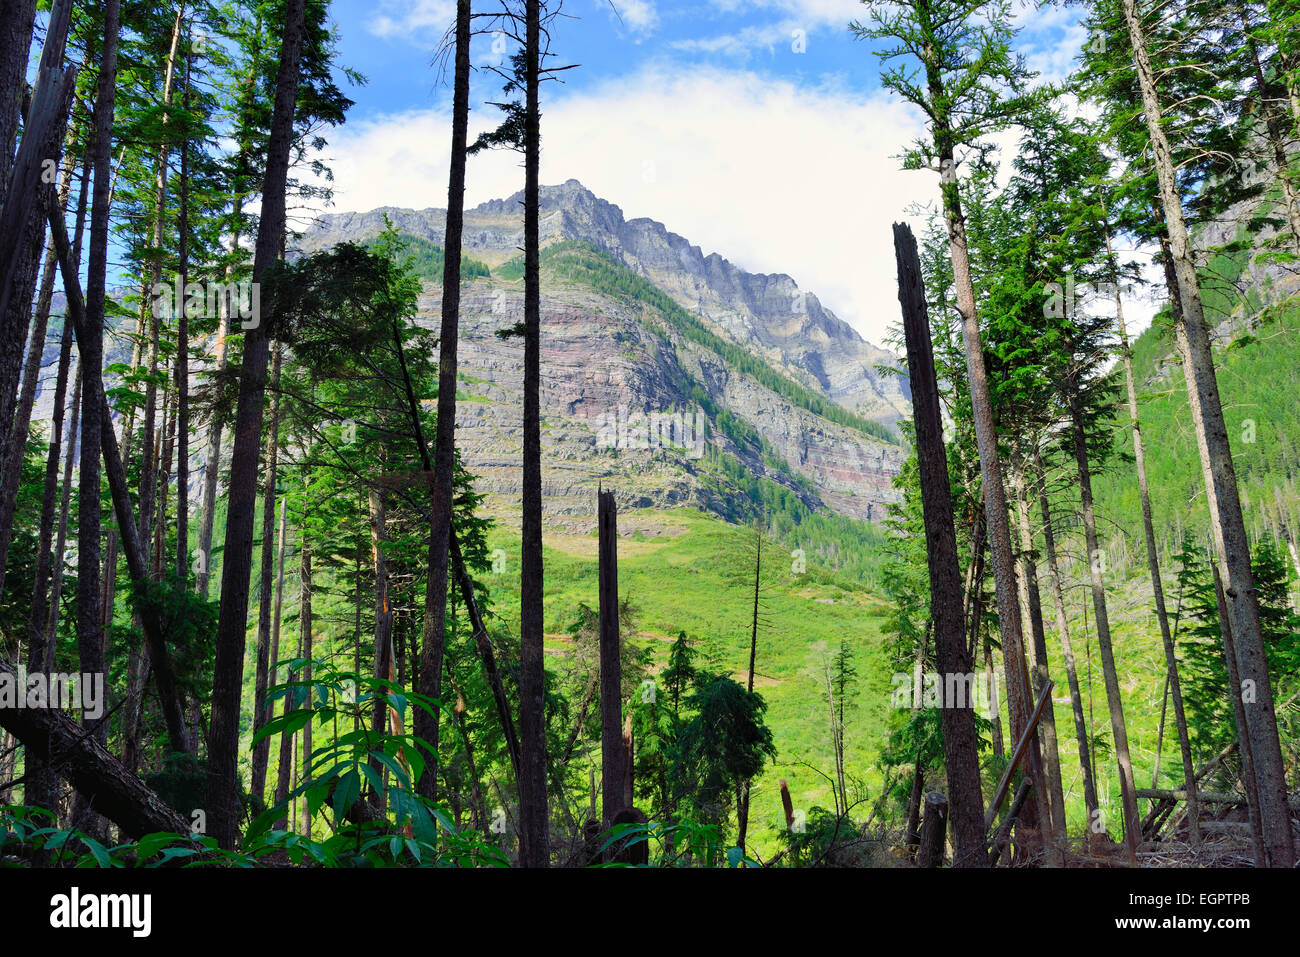 view of the mountains through the conifer trees along the Avalanche lake trail in Glacier National Park - Stock Image